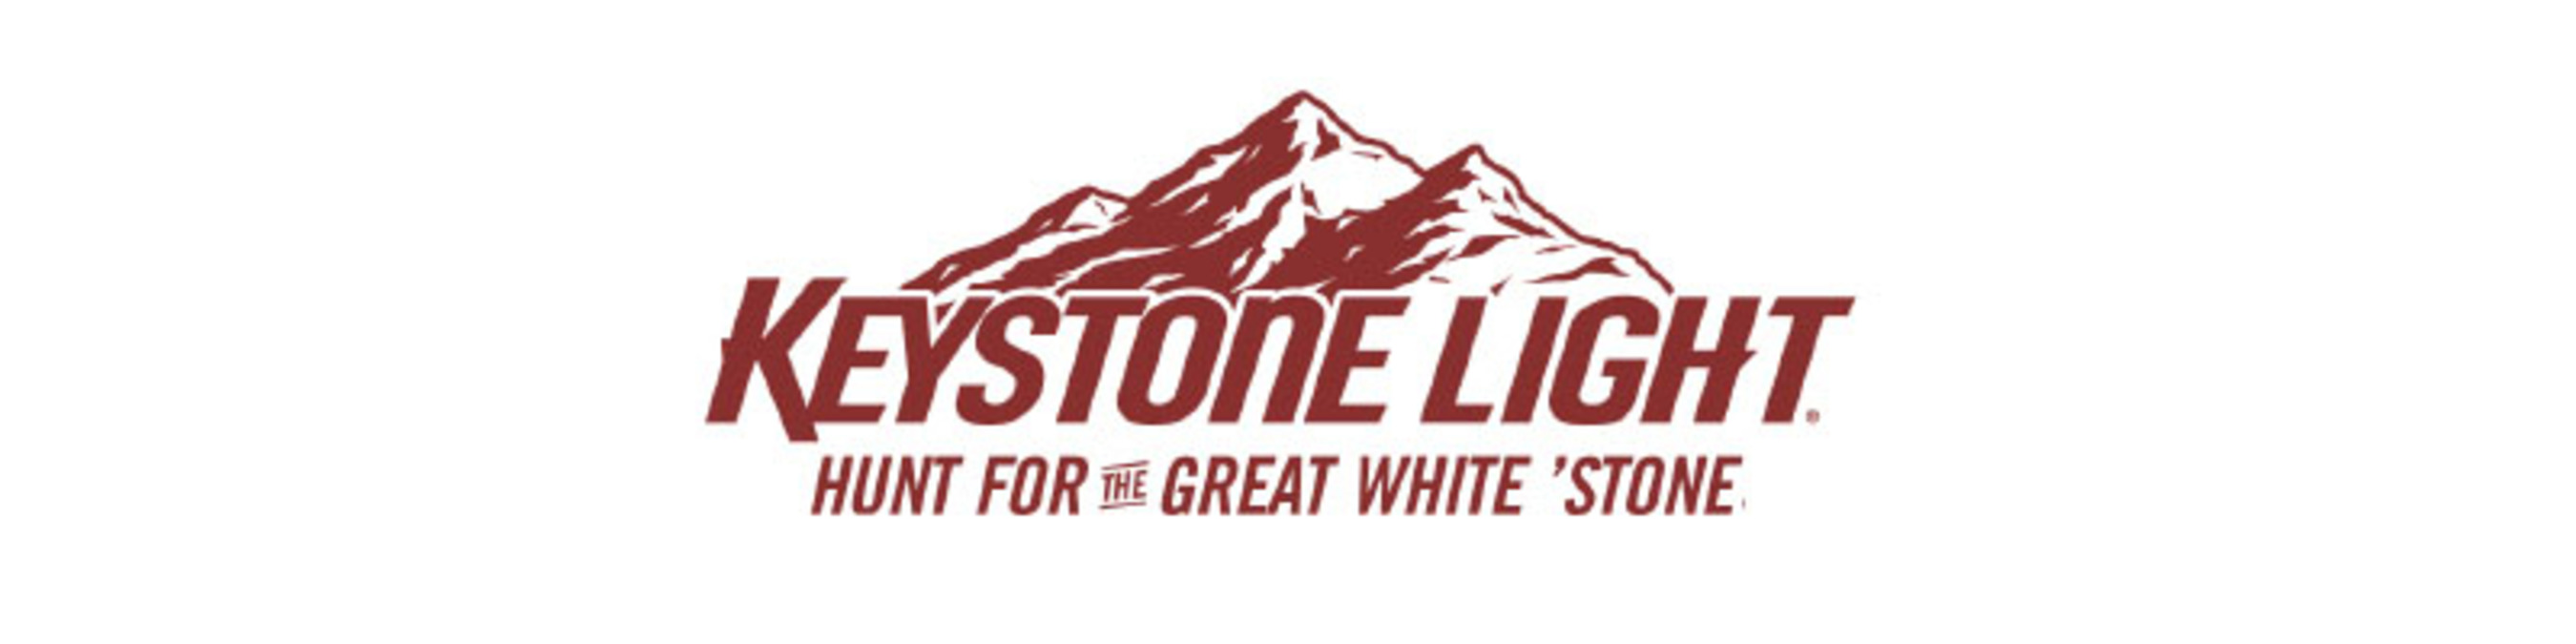 Keystone Light & Chuck Testa Challenge Fans To Join In 'The Hunt for the Great White Stone'